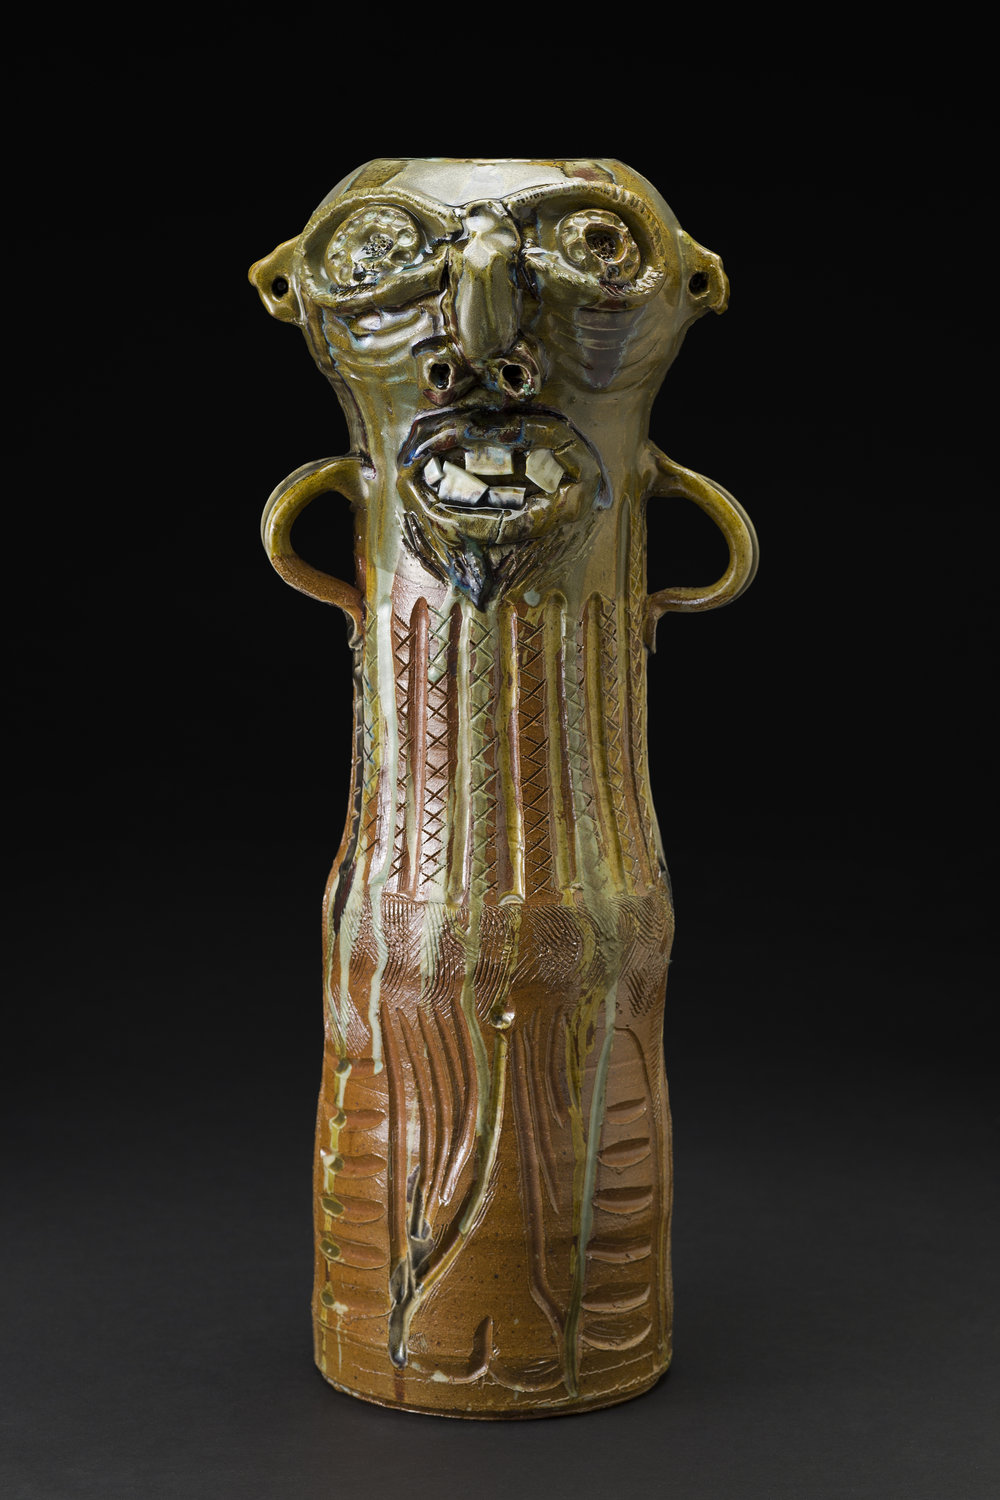 Jim McDowell  Mad Black Man  , 2015 Soda-fired clay in a gas kiln, amber celadon glaze, red iron oxide, and blue-stained glass runs 18.75 x 7.5 x 7 inches 47.6 x 19.1 x 17.8 cm JMcD 7